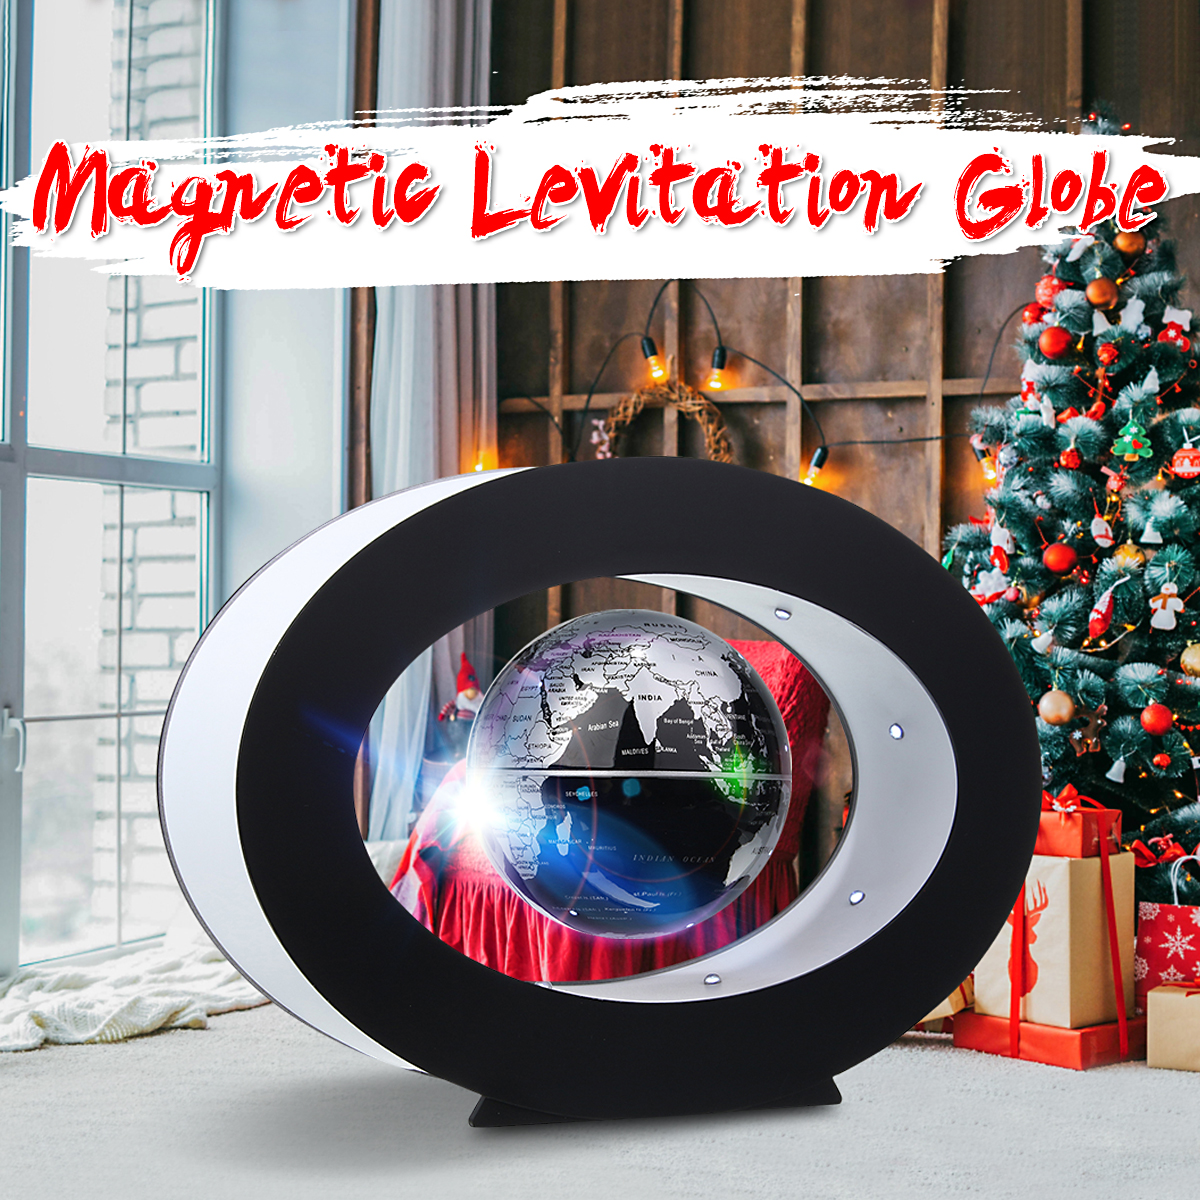 3Magnetic  Levitation Geography Globe Floating Tellurion World Map LED Light Earth Terrestrial Kids Gift Children Education Toy3Magnetic  Levitation Geography Globe Floating Tellurion World Map LED Light Earth Terrestrial Kids Gift Children Education Toy